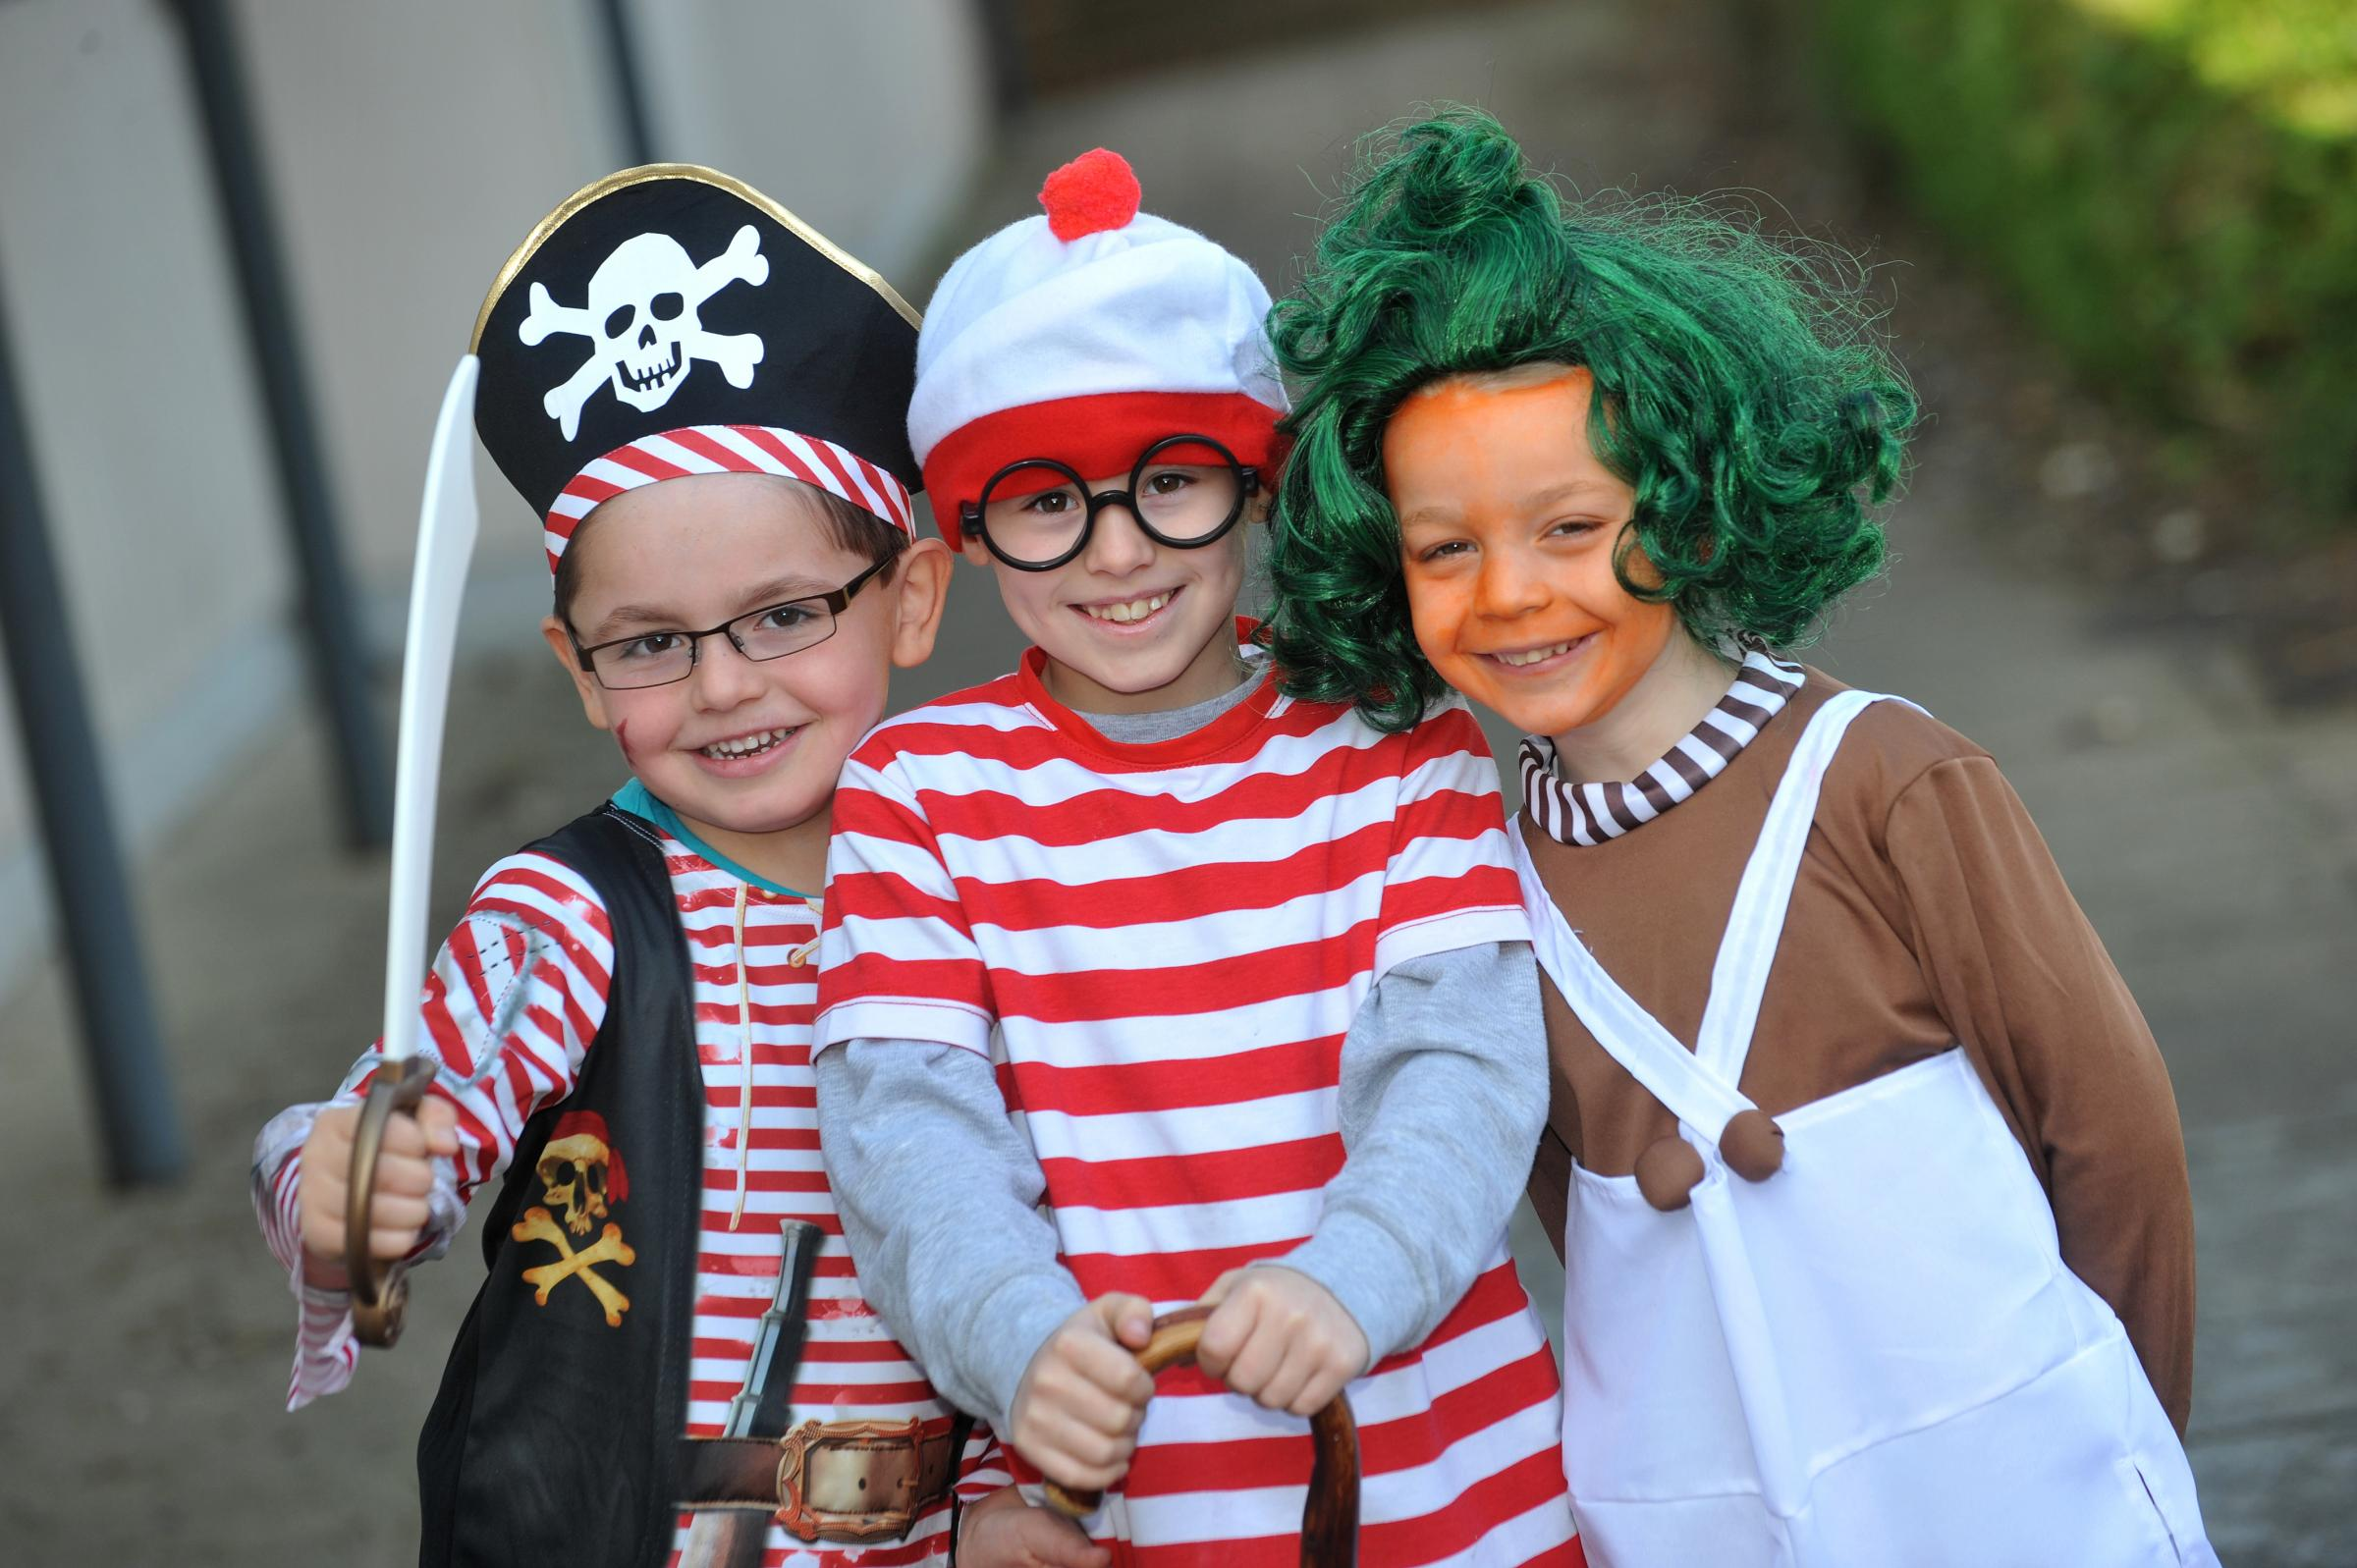 Sussex schoolchildren celebrate World Book Day